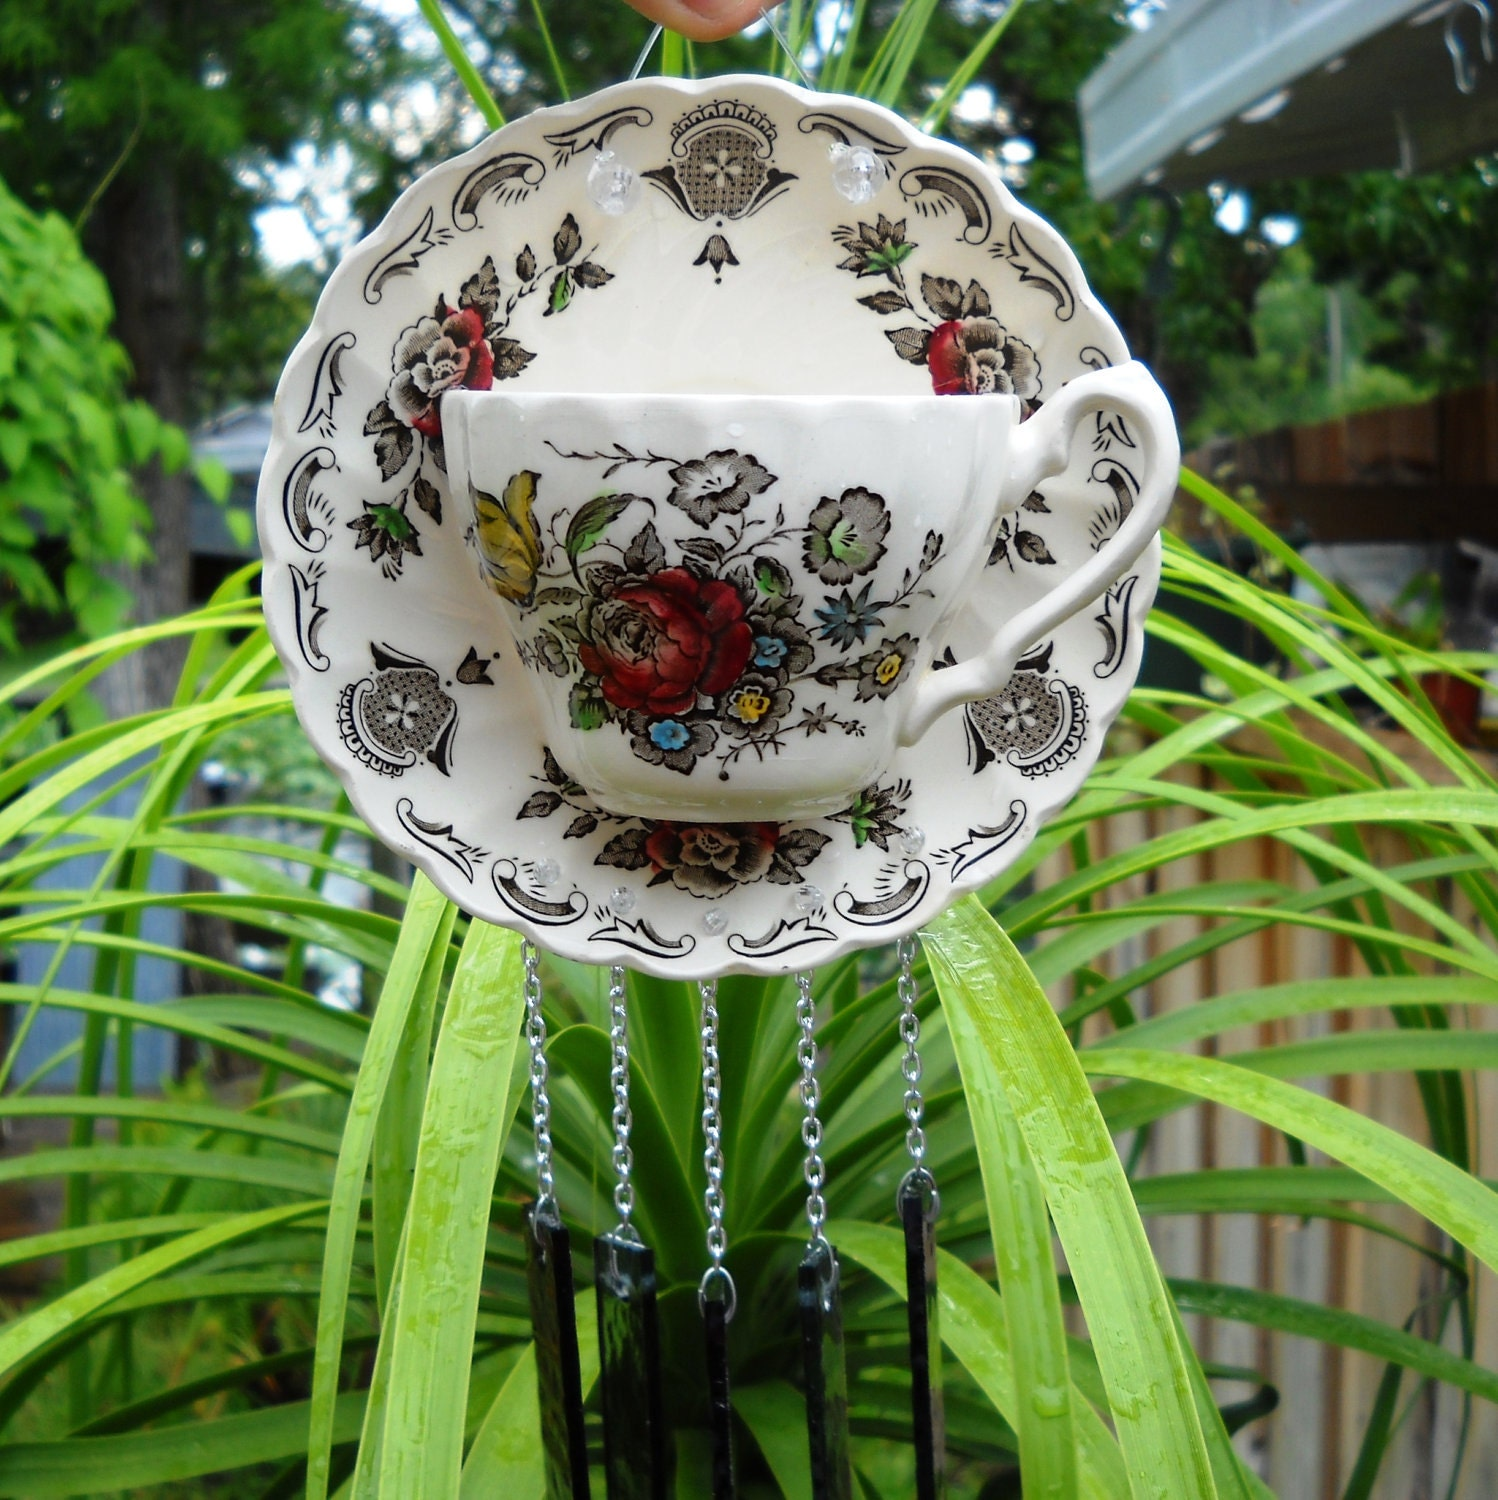 Collectable Garden Art Vintage Glass Wind Chime With